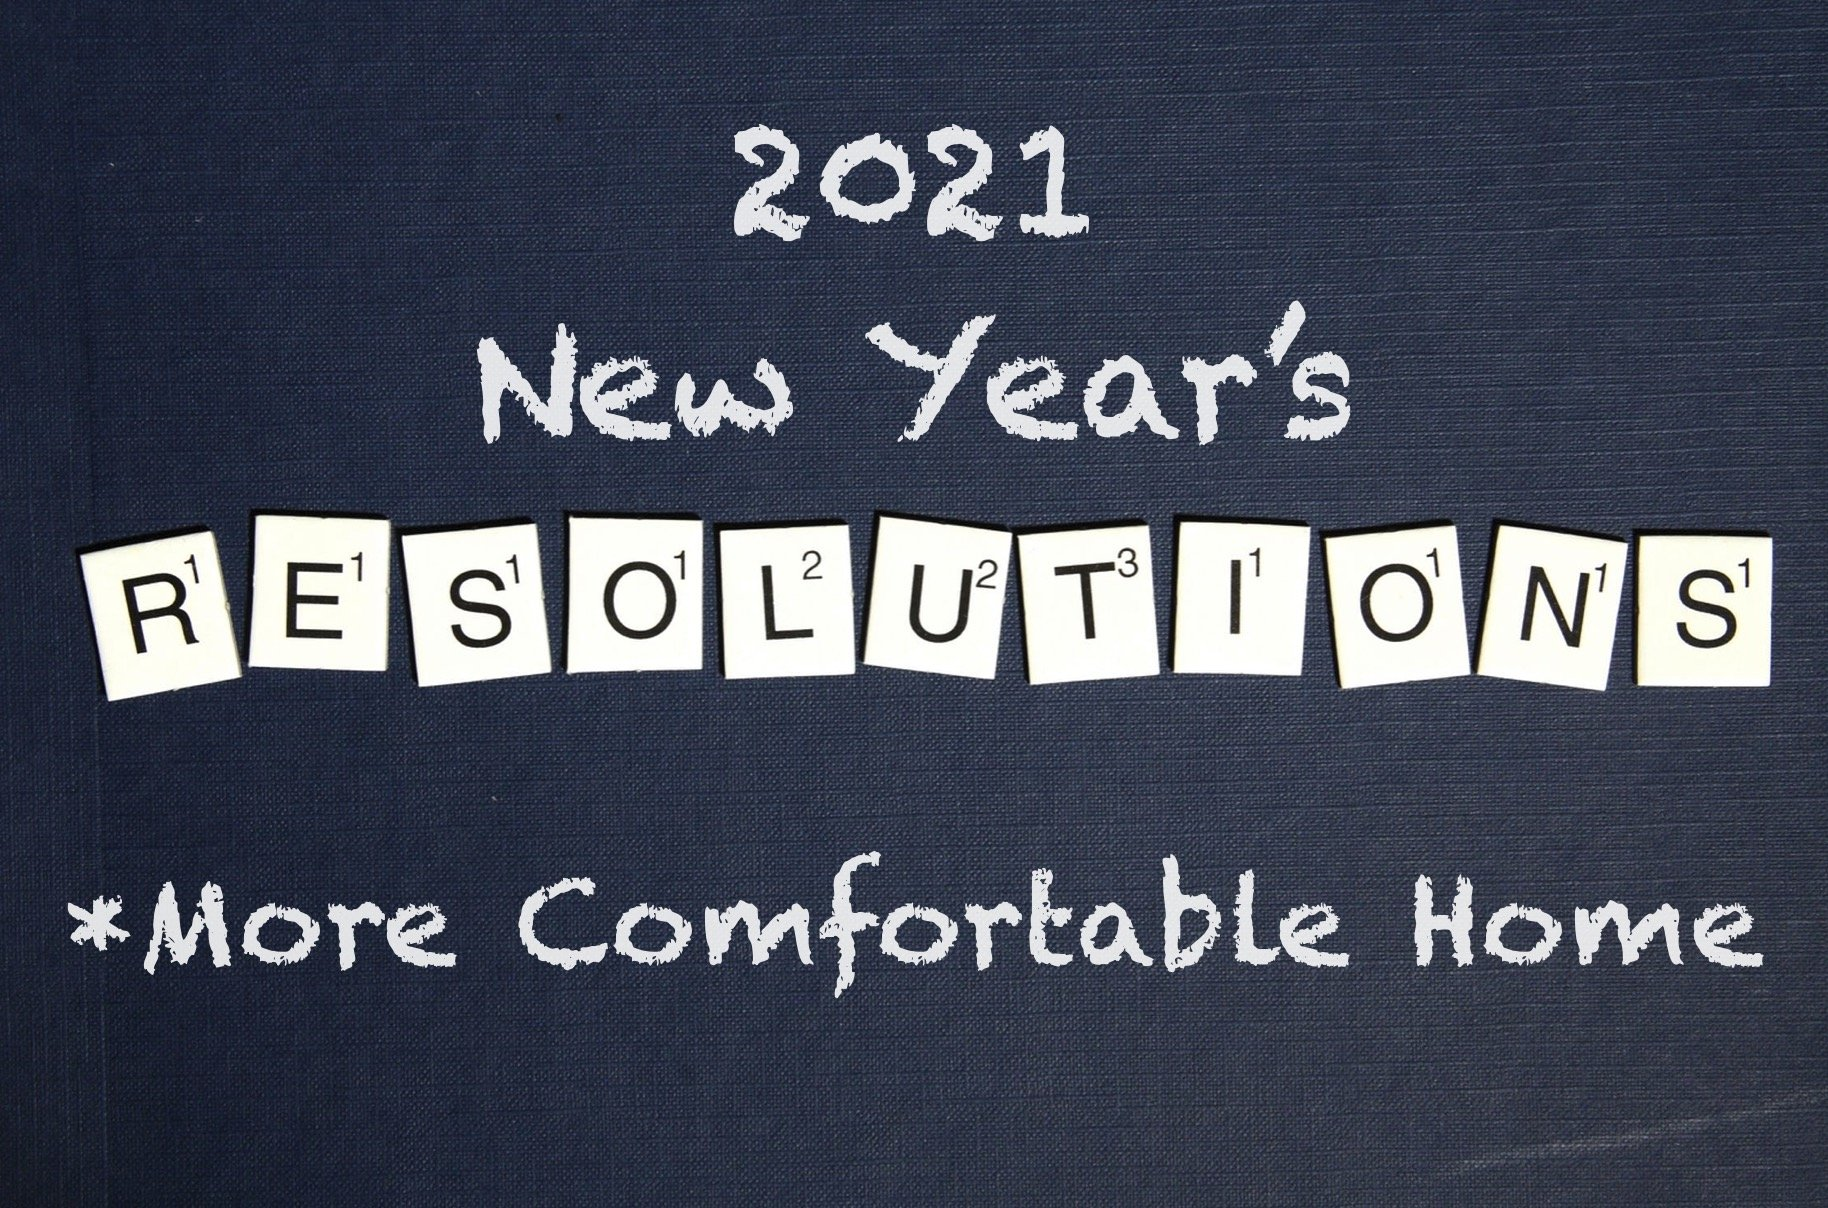 Resolve to Have a More Comfortable and Energy Efficient Home in 2021 - Home Window Tinting in Denver, CO